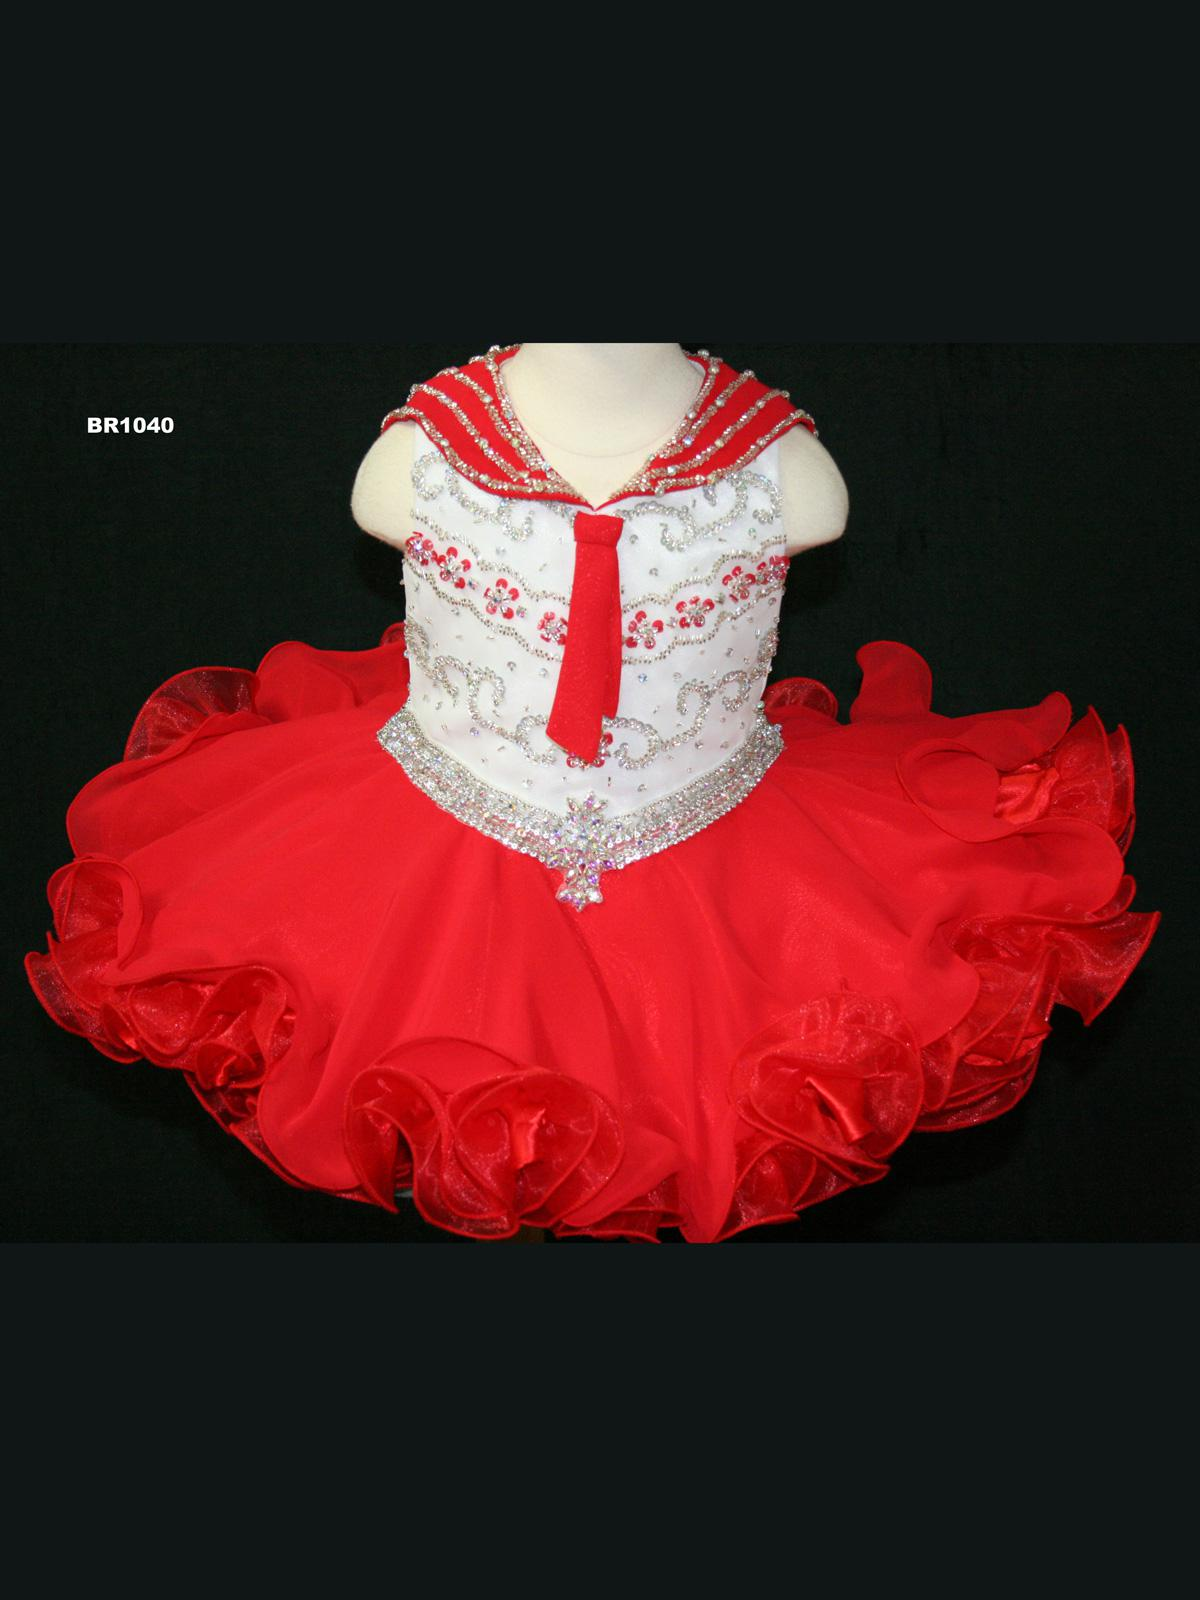 2016 On Sale Cute Red Girls Pageant Dresses Short Chiffon Organza V Neck Zipper Back Beading Sequins White Bodice Bow Girls TUTU Dresses